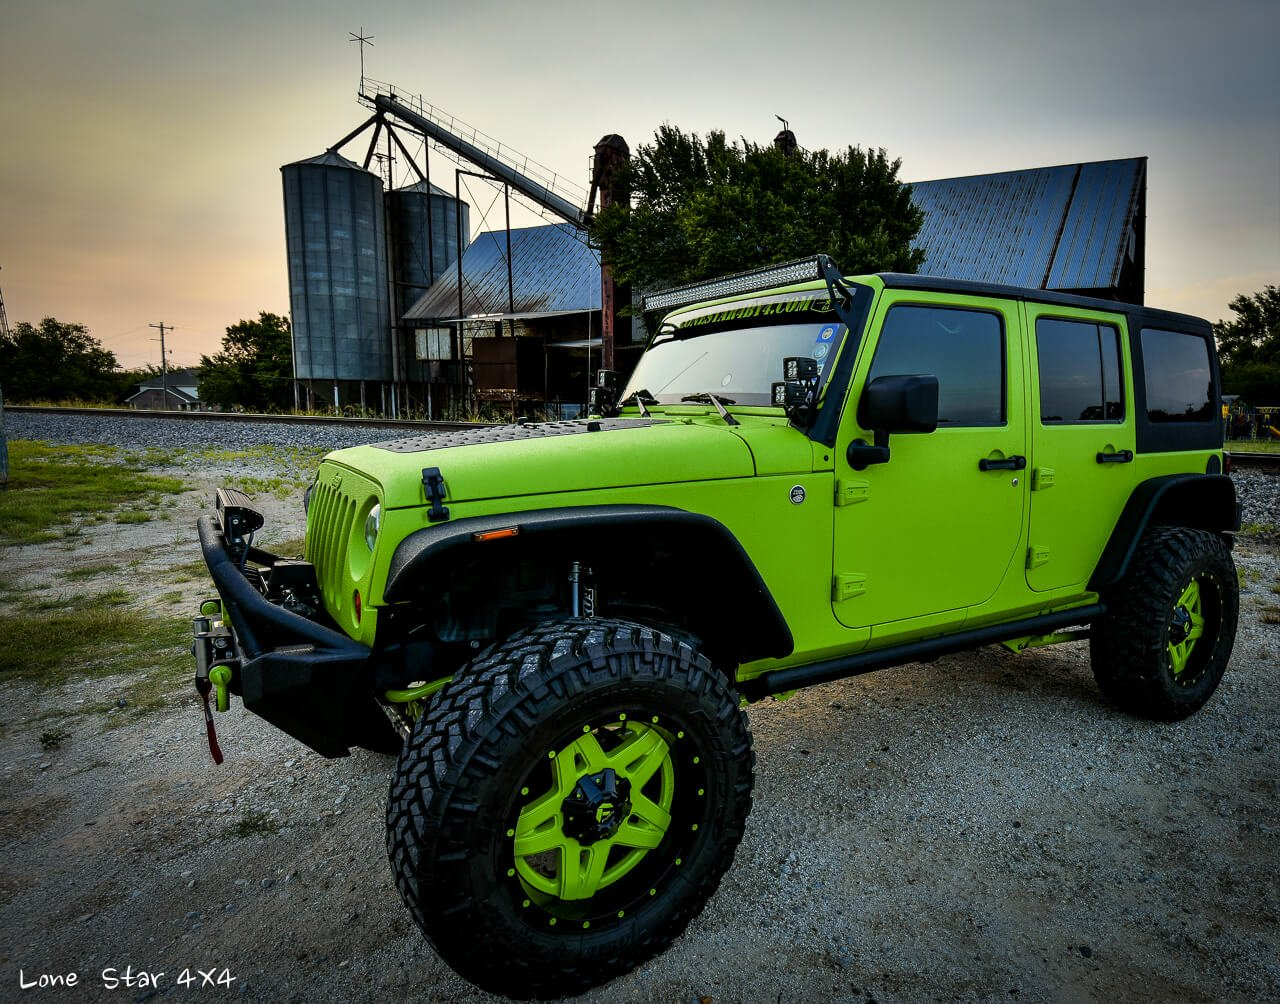 Matte White Jeep Patriot >> 100+ [ Gecko Green Jeep For Sale ] | Jeep Wrangler Ute On The Way Loaded 4x4,3m Vinyl Vehicle ...